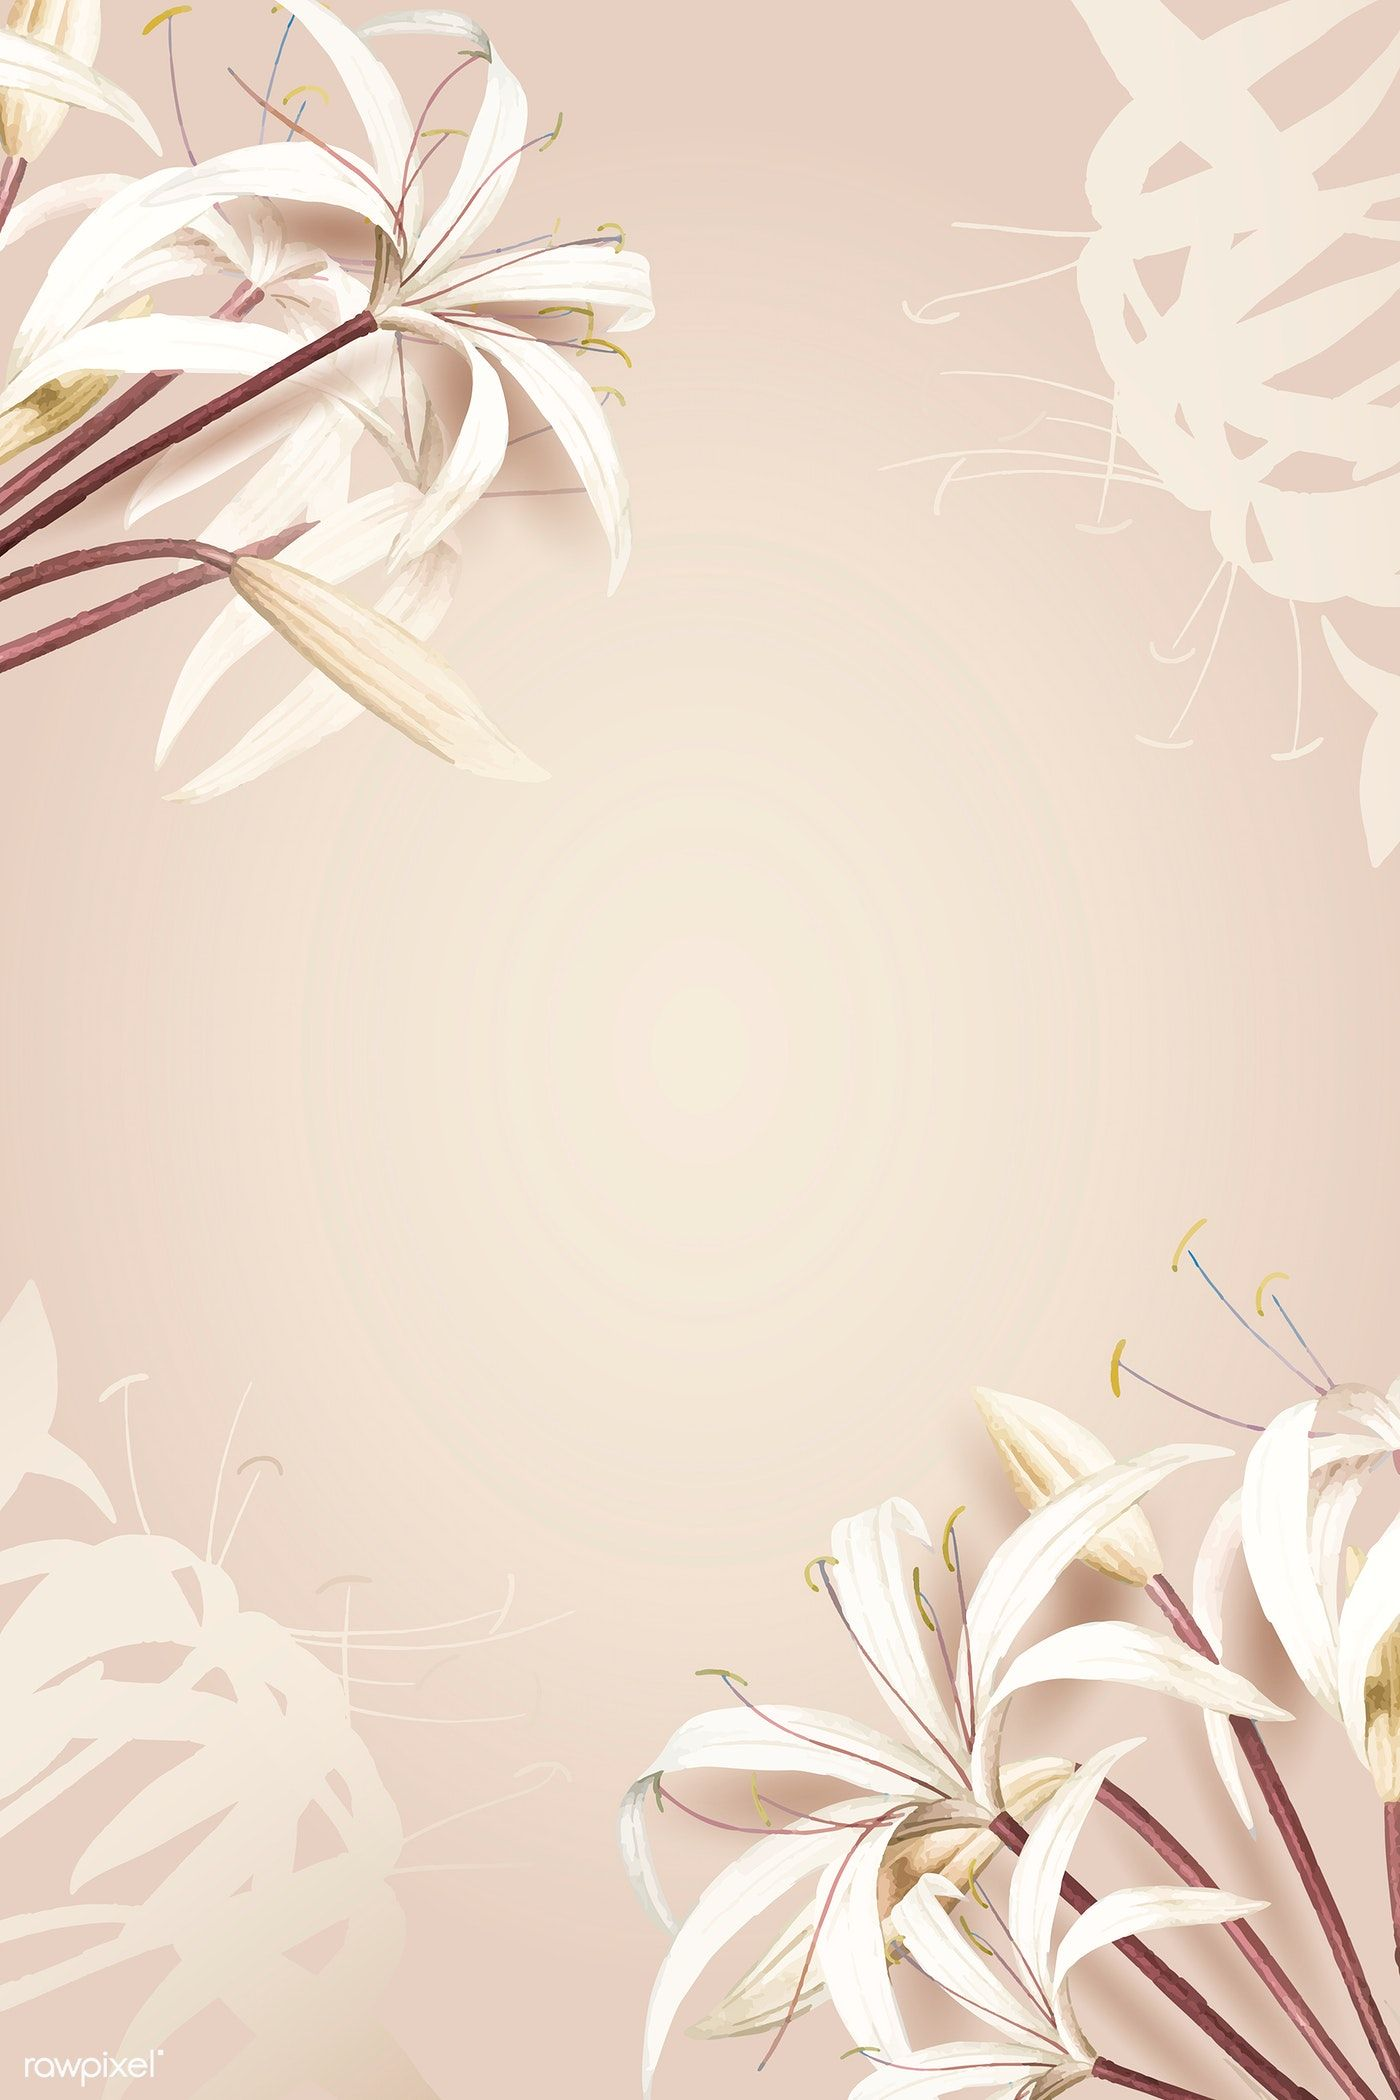 Download premium vector of White spider lily pattern